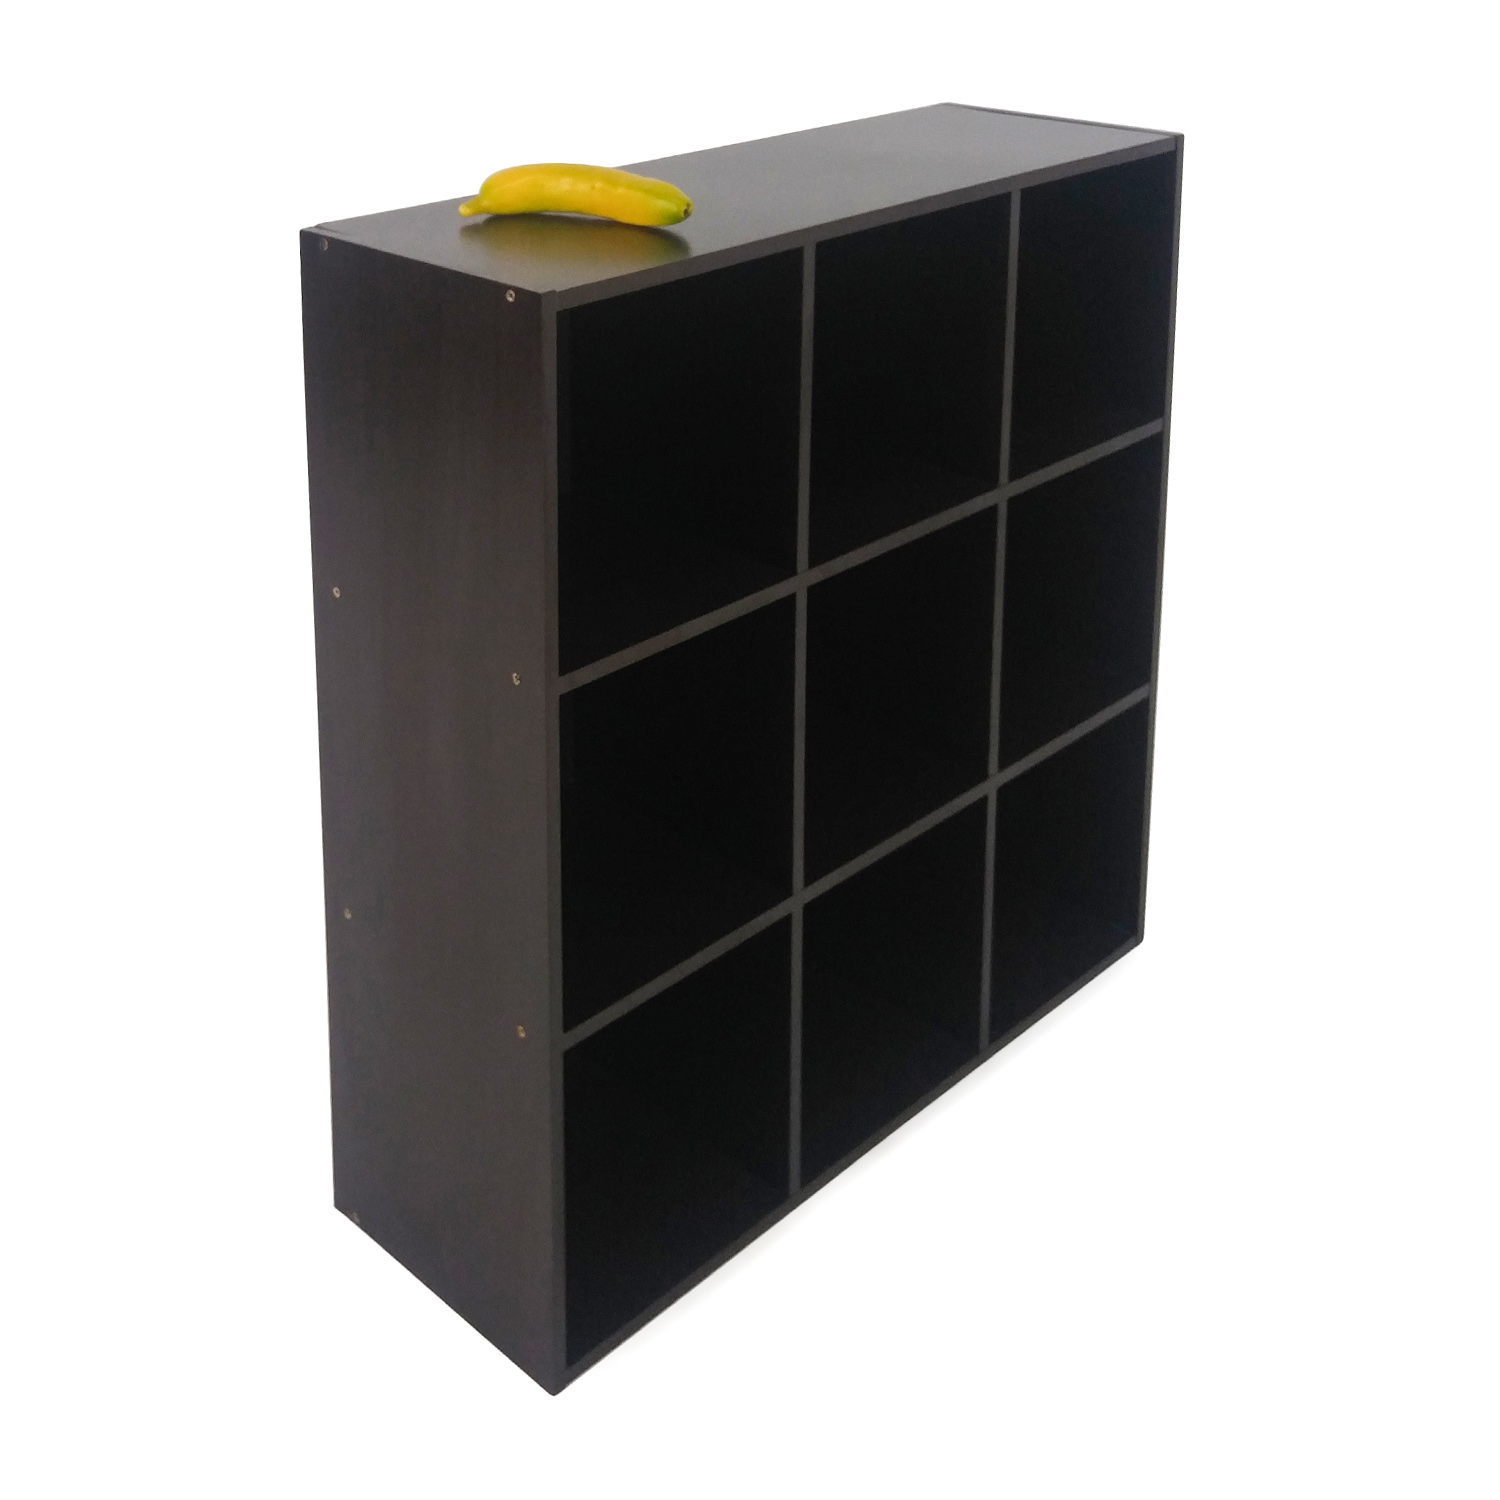 ... Container Store Container Store Cube Organizer And Bookshelf Nyc ...